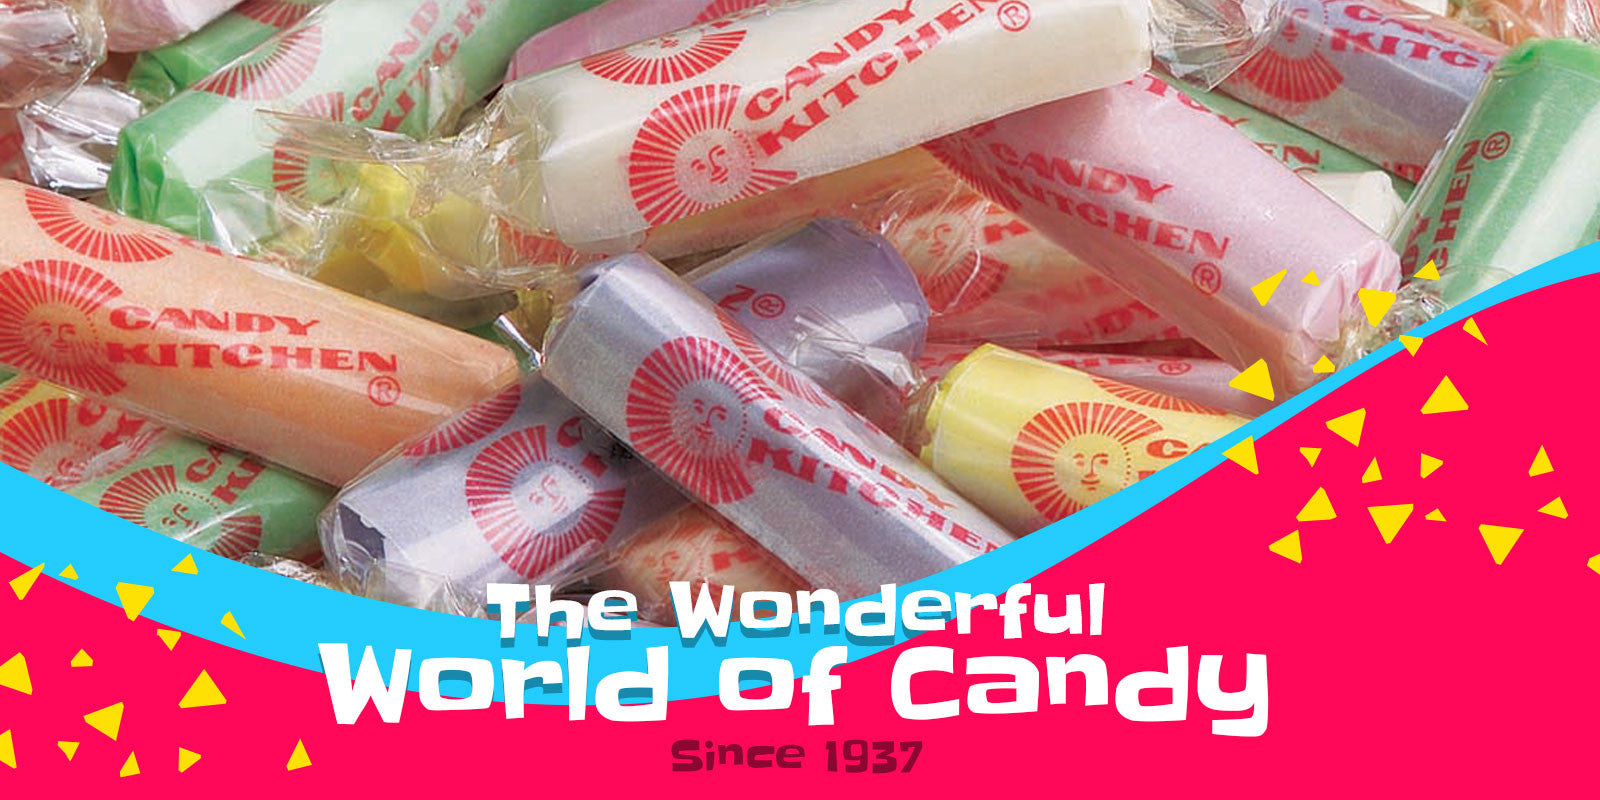 Candy Kitchen | Taffy, Chocolate, Gummies & More – Candy Kitchen Shoppes